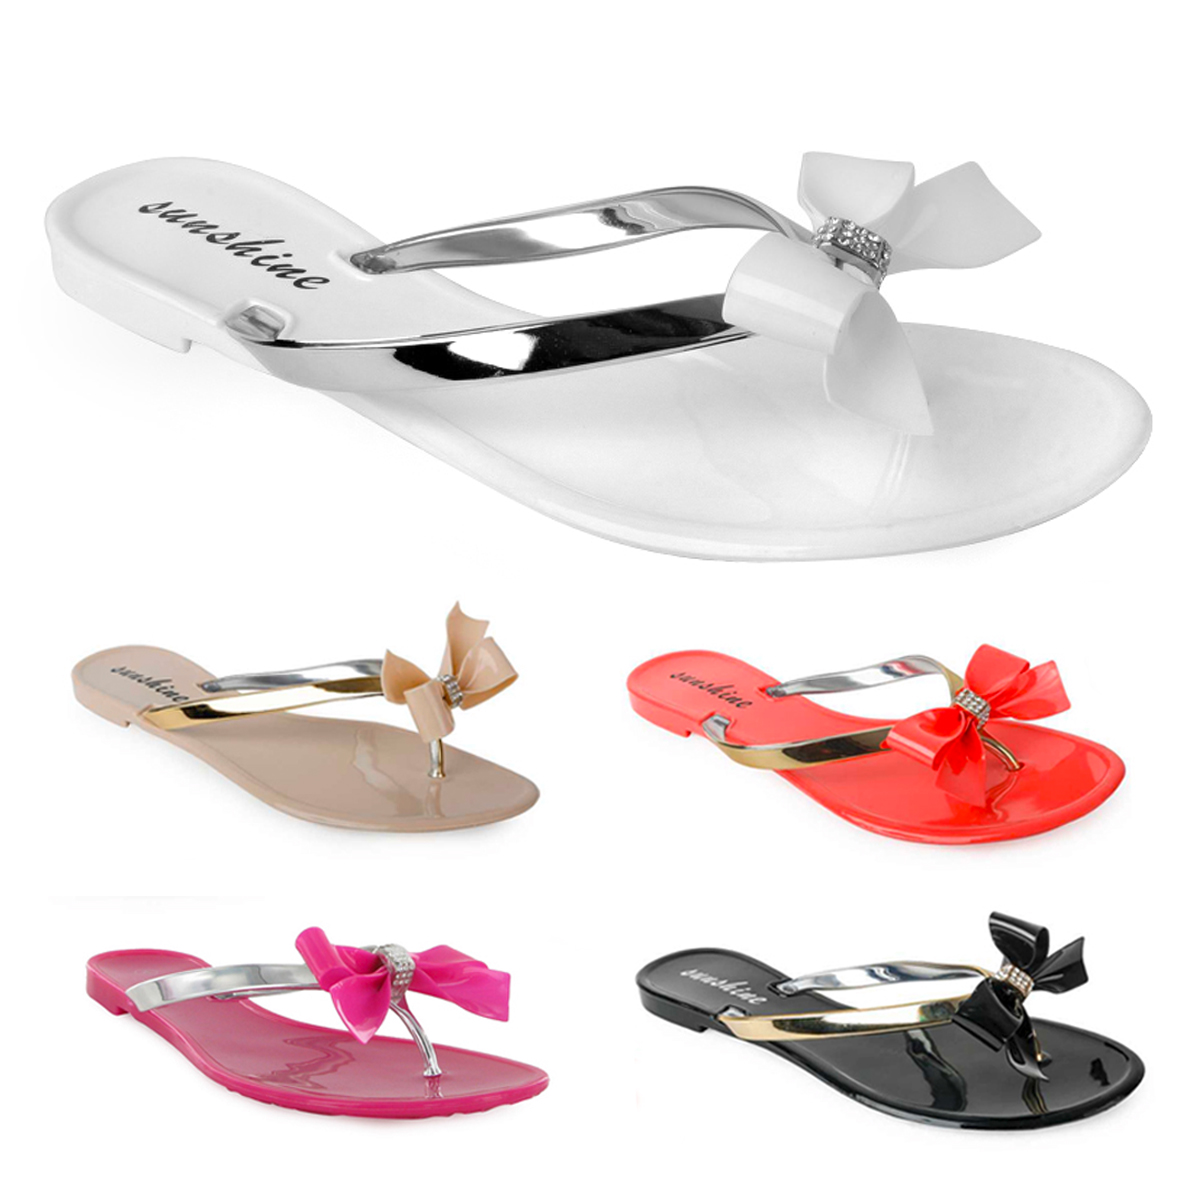 9a6e36b85b718 METALLIC LADIES DIAMANTE BOW FLIP FLOP SANDALS SHOES SIZE 3-8